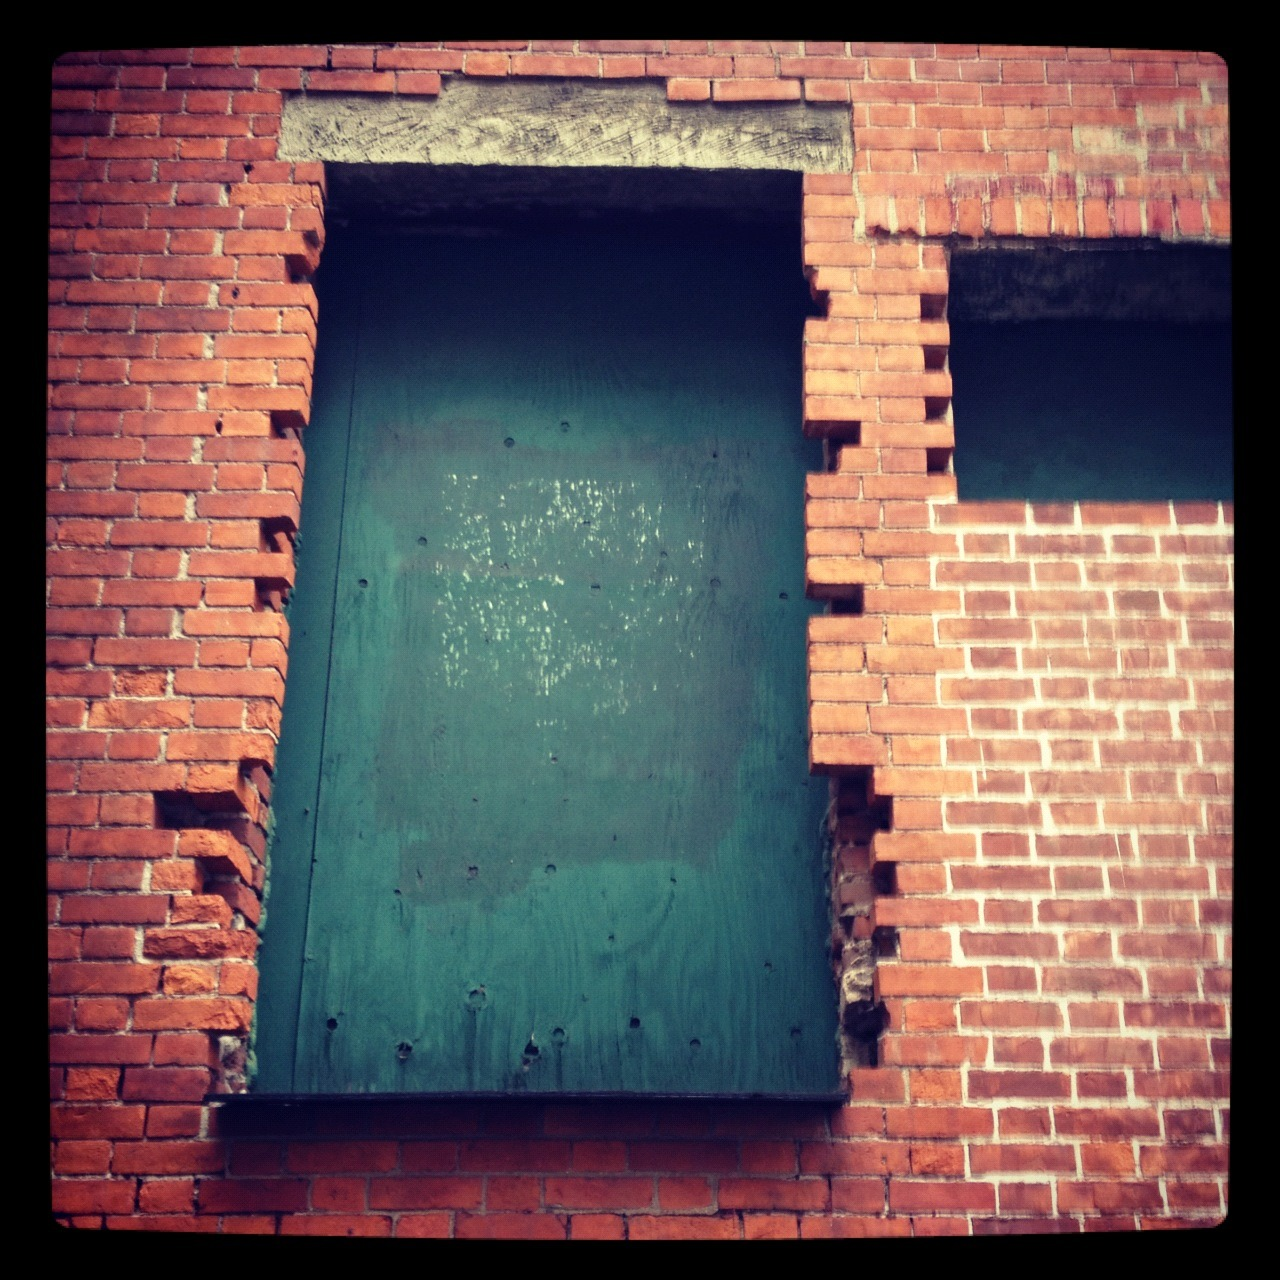 Photo I took of a doorway to nowhere, when I worked on Mercer Street in Soho